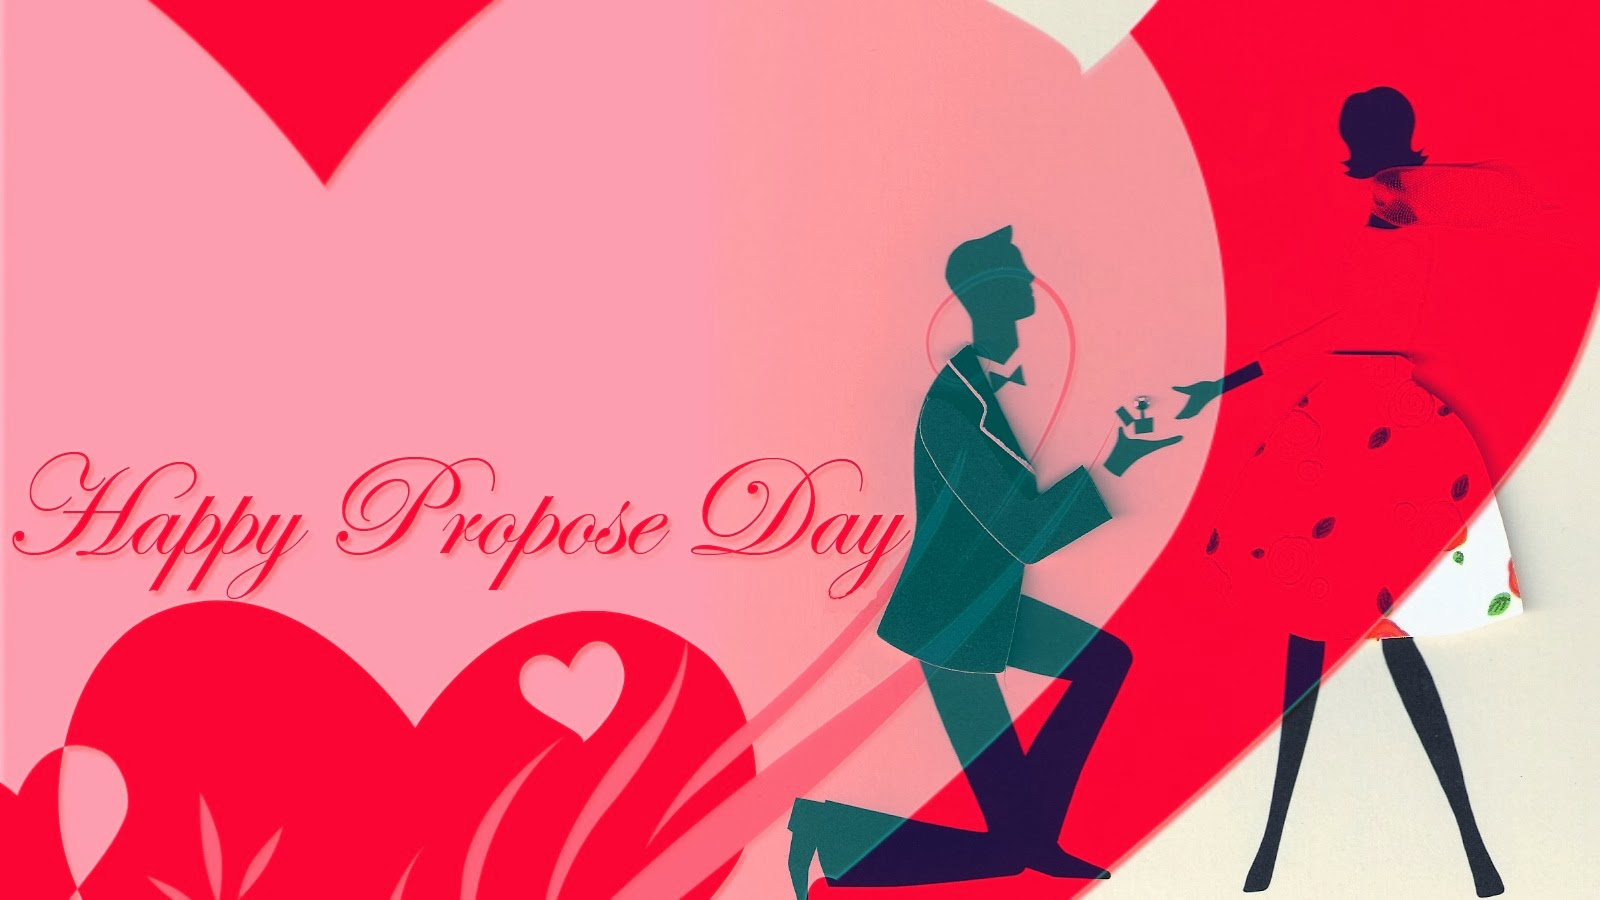 Happy Propose Day 2014 Hindi SMS Messages